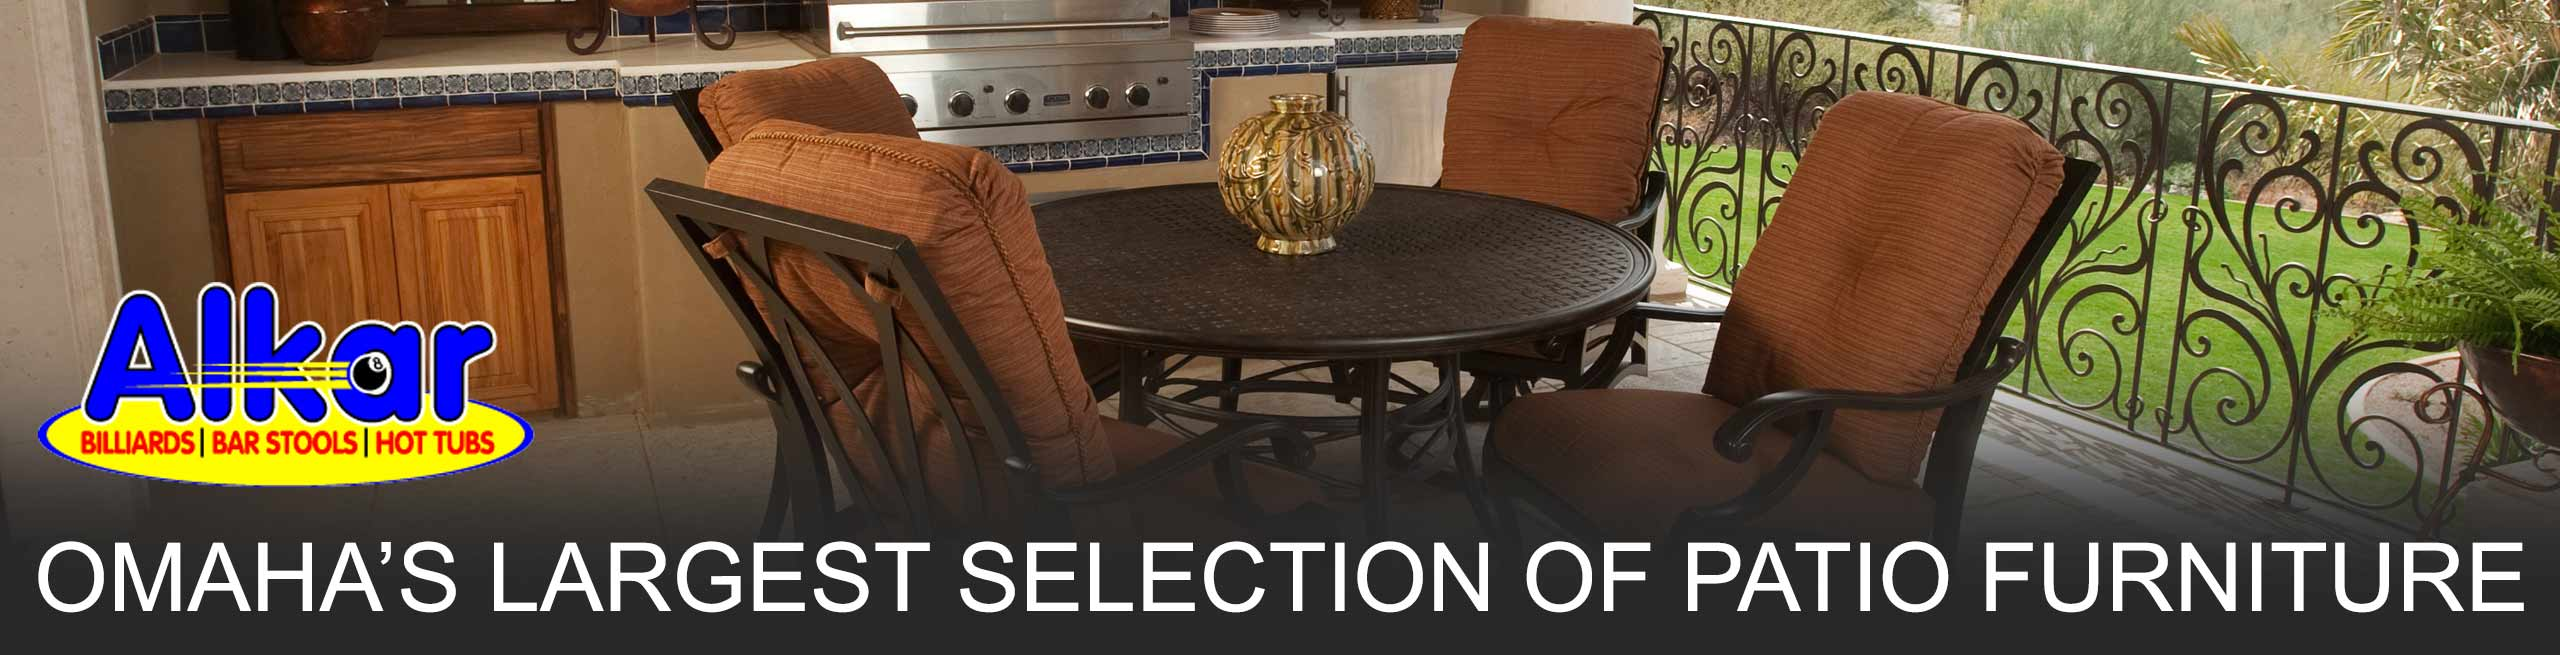 Omaha's Largest Selection of Patio Furniture At The Best Prices